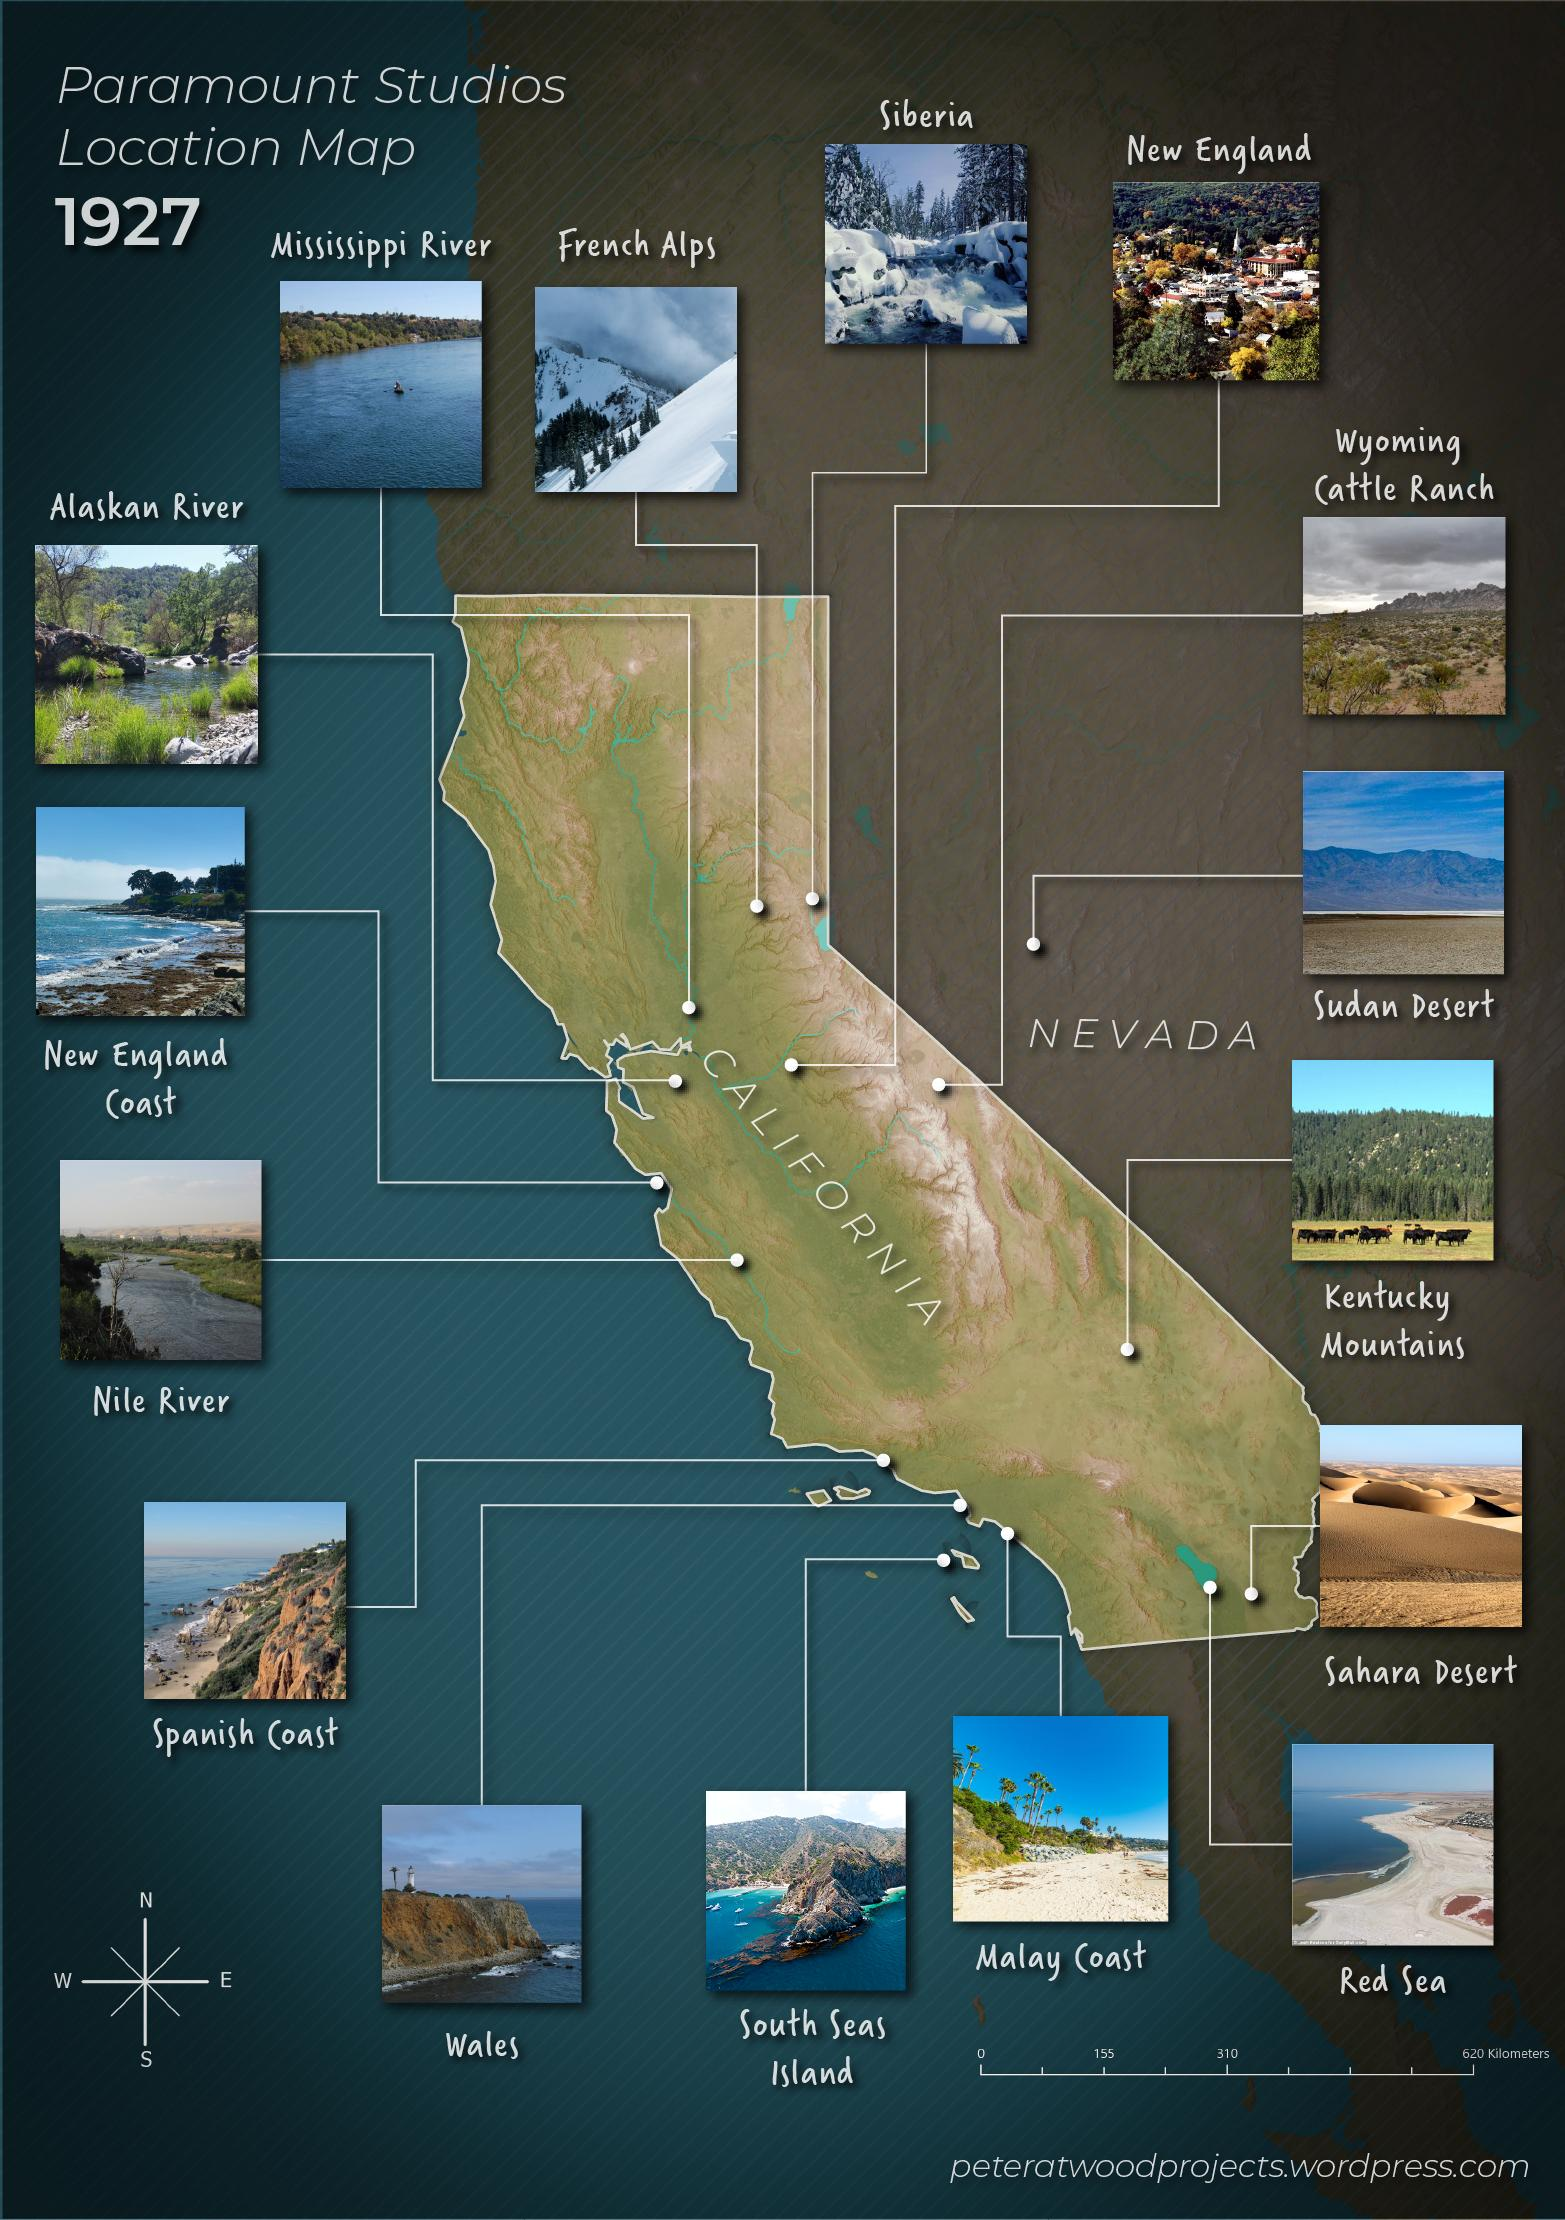 Paramount Pictures Map of Filming Locations in California in  1927 (now with photos)